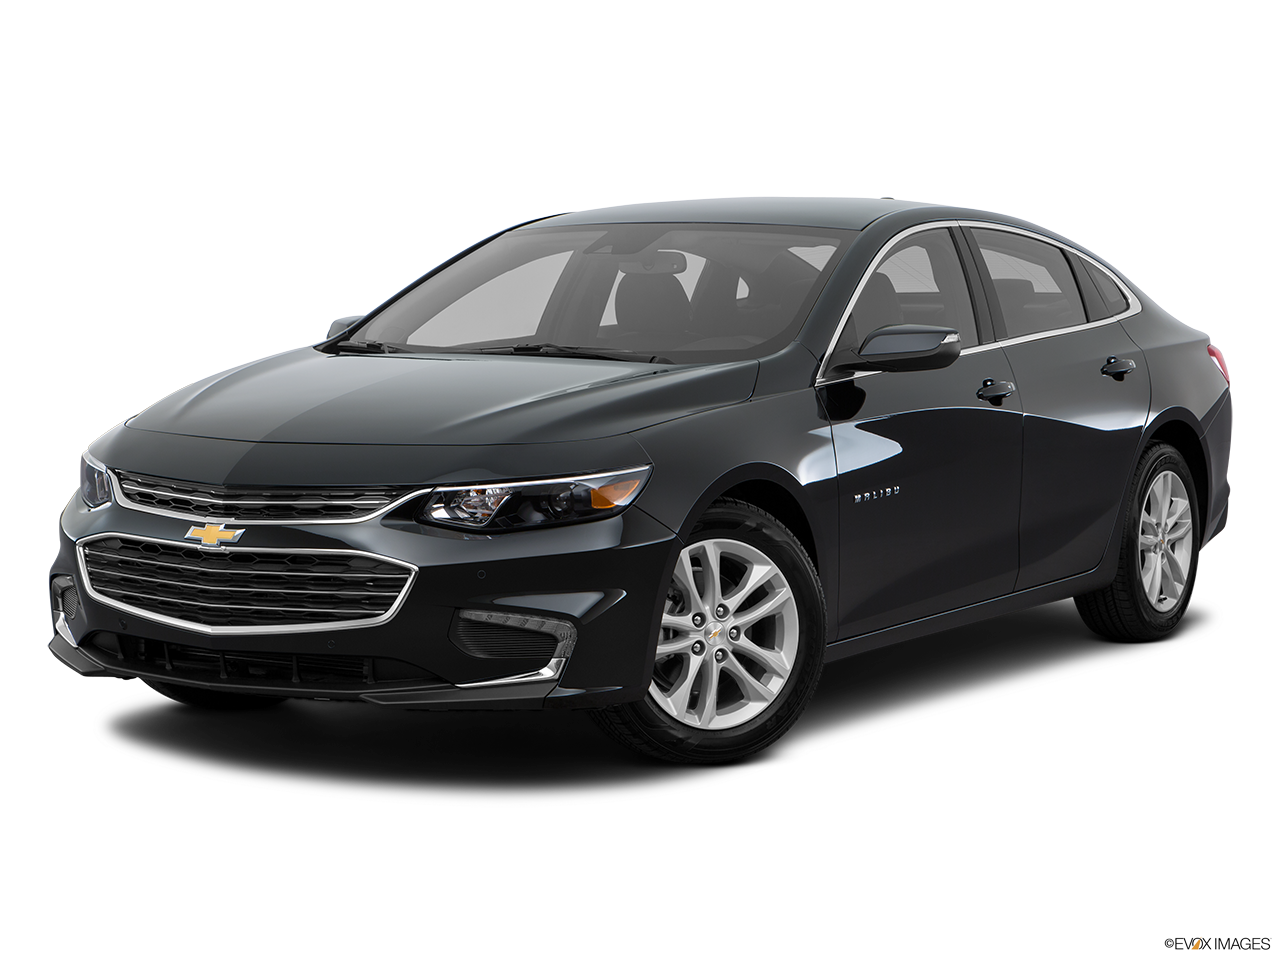 2016 chevrolet malibu riverside moss bros chevrolet. Black Bedroom Furniture Sets. Home Design Ideas